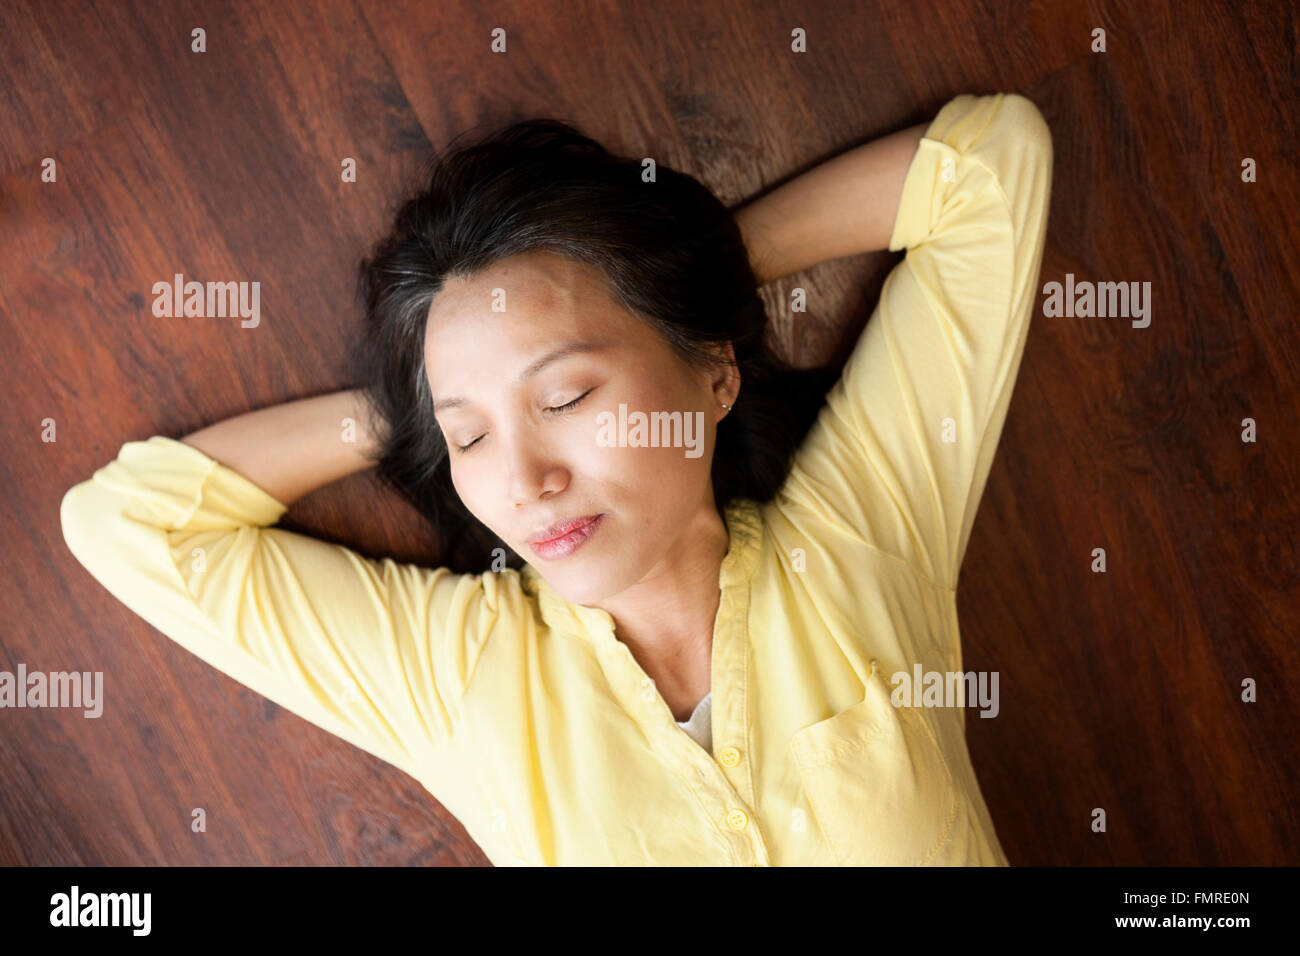 An Asian woman appears to be taking a brief nap on the floor. - Stock Image